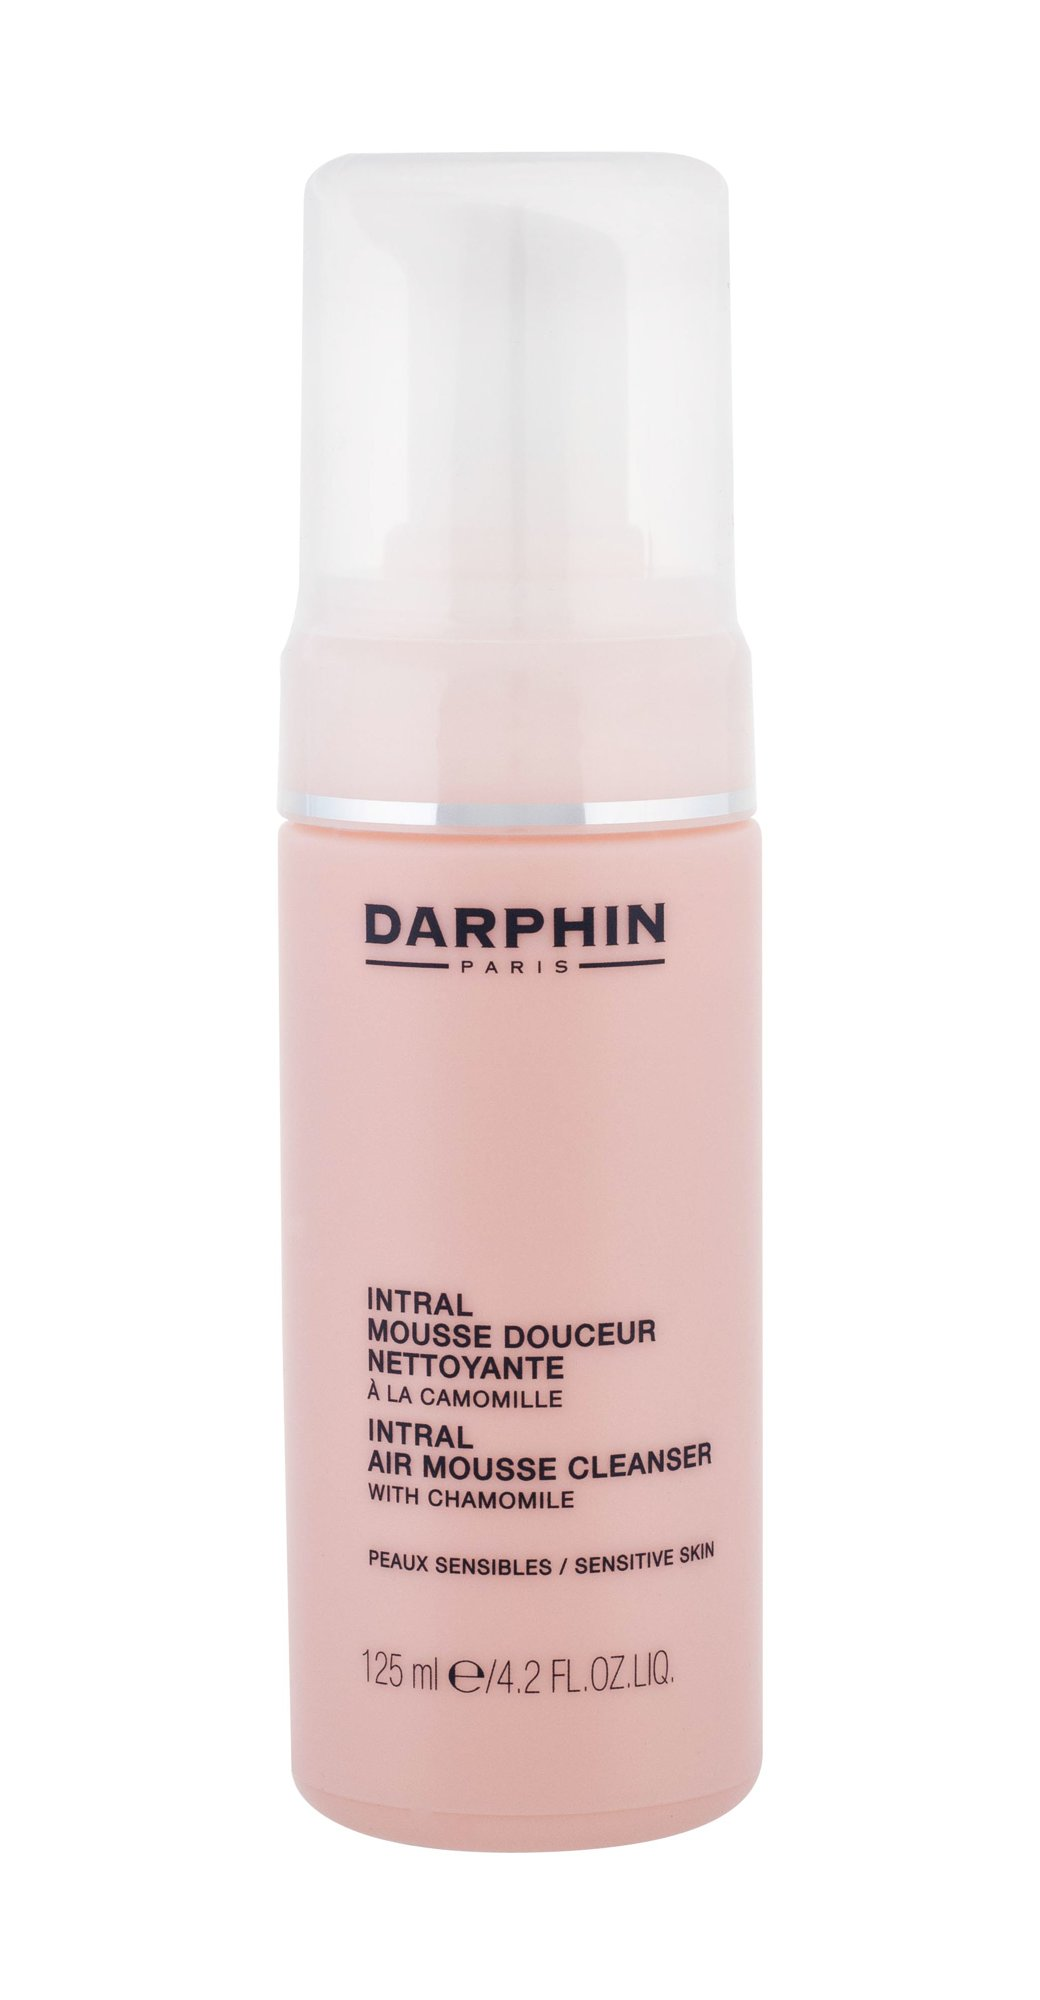 Darphin Intral Cleansing Mousse 125ml